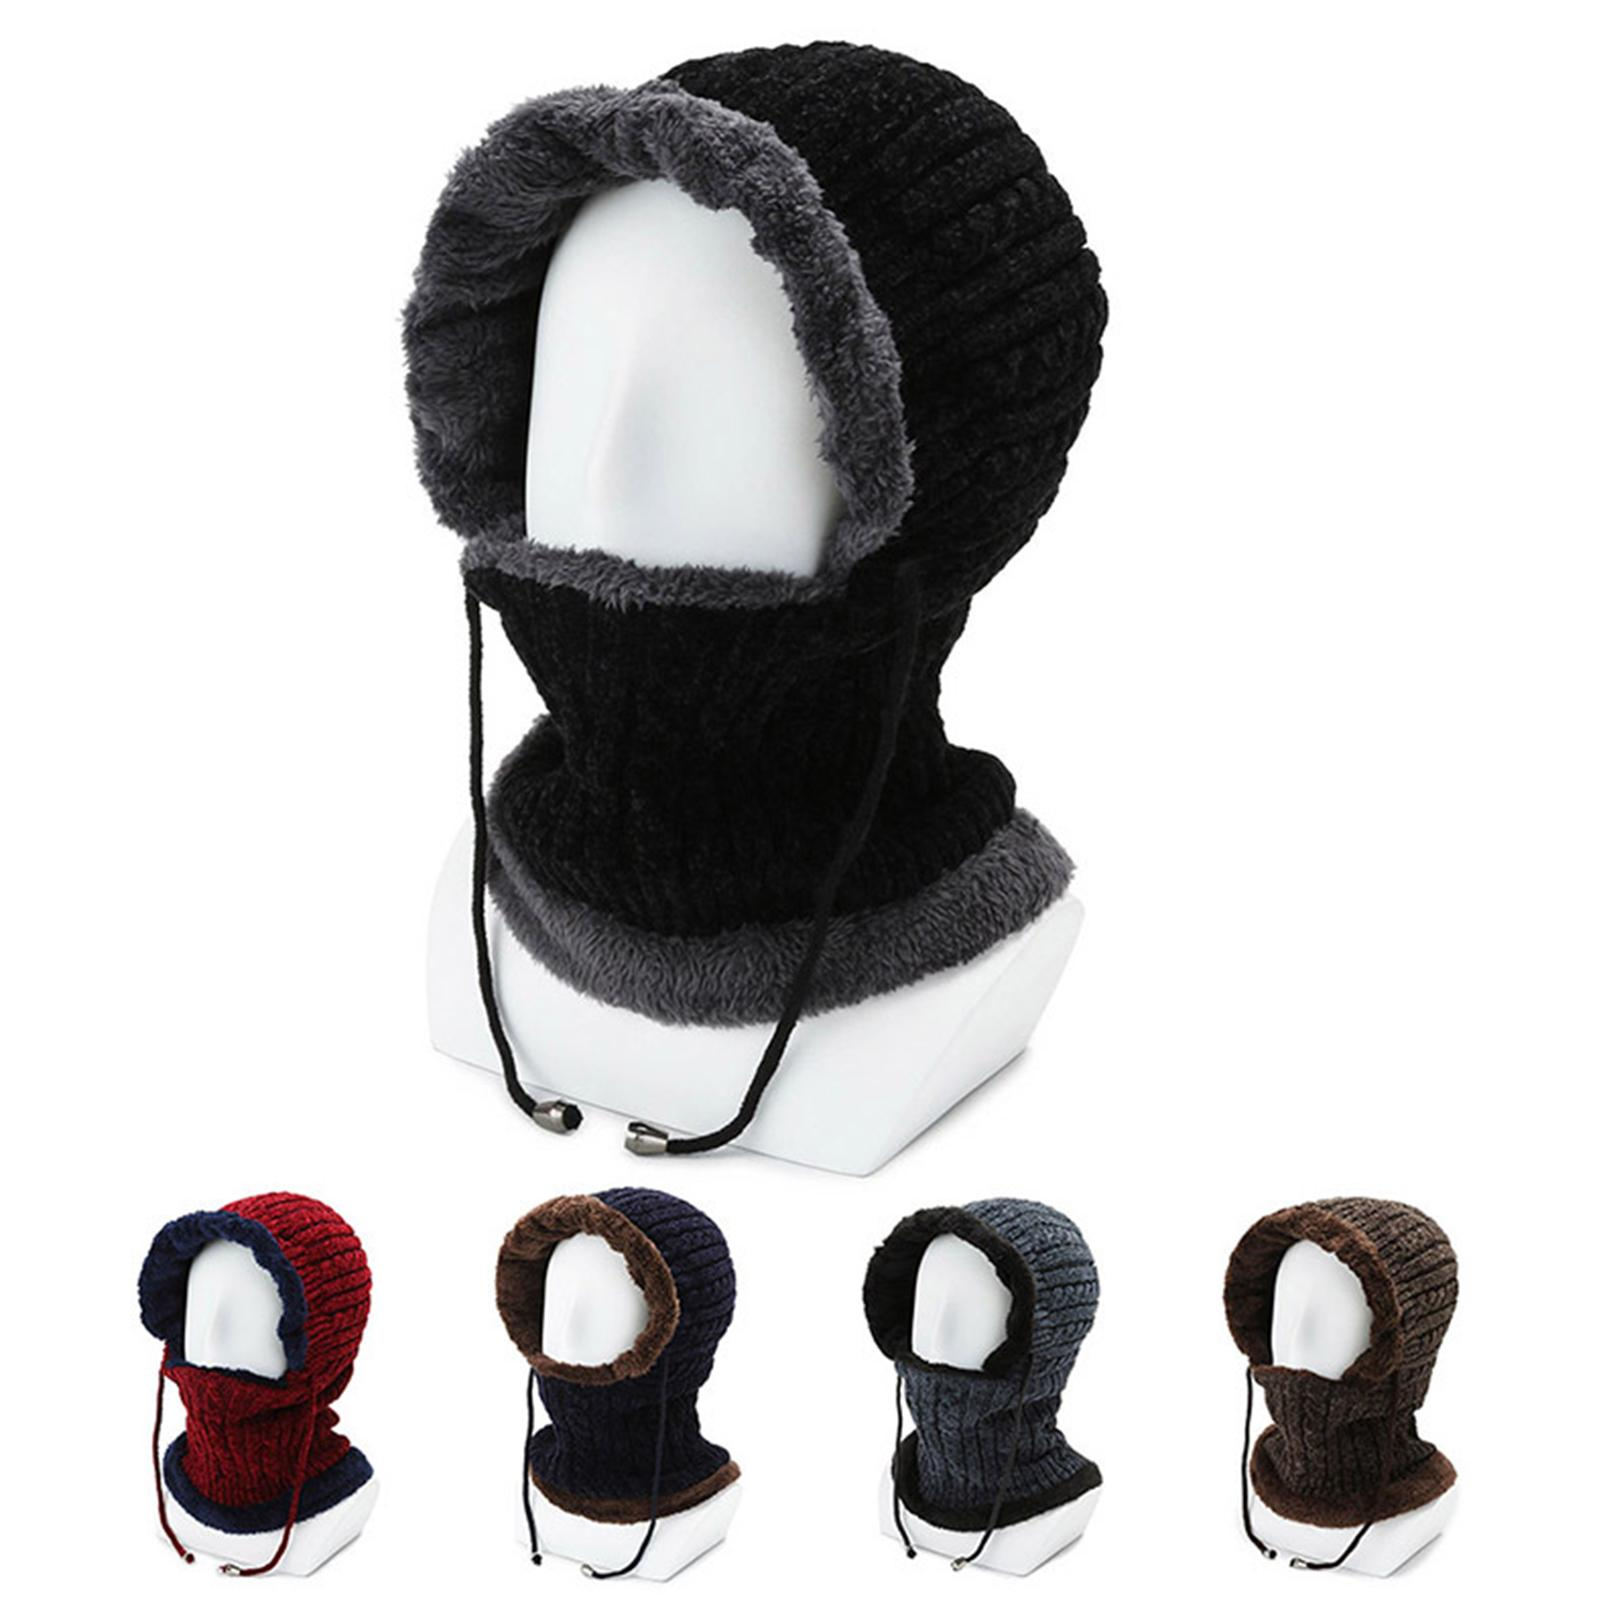 Men Women Winter Warm Collar Knitted Hat Windproof Ear Protection Dual-use Cap Beanie Hat Caps Thick